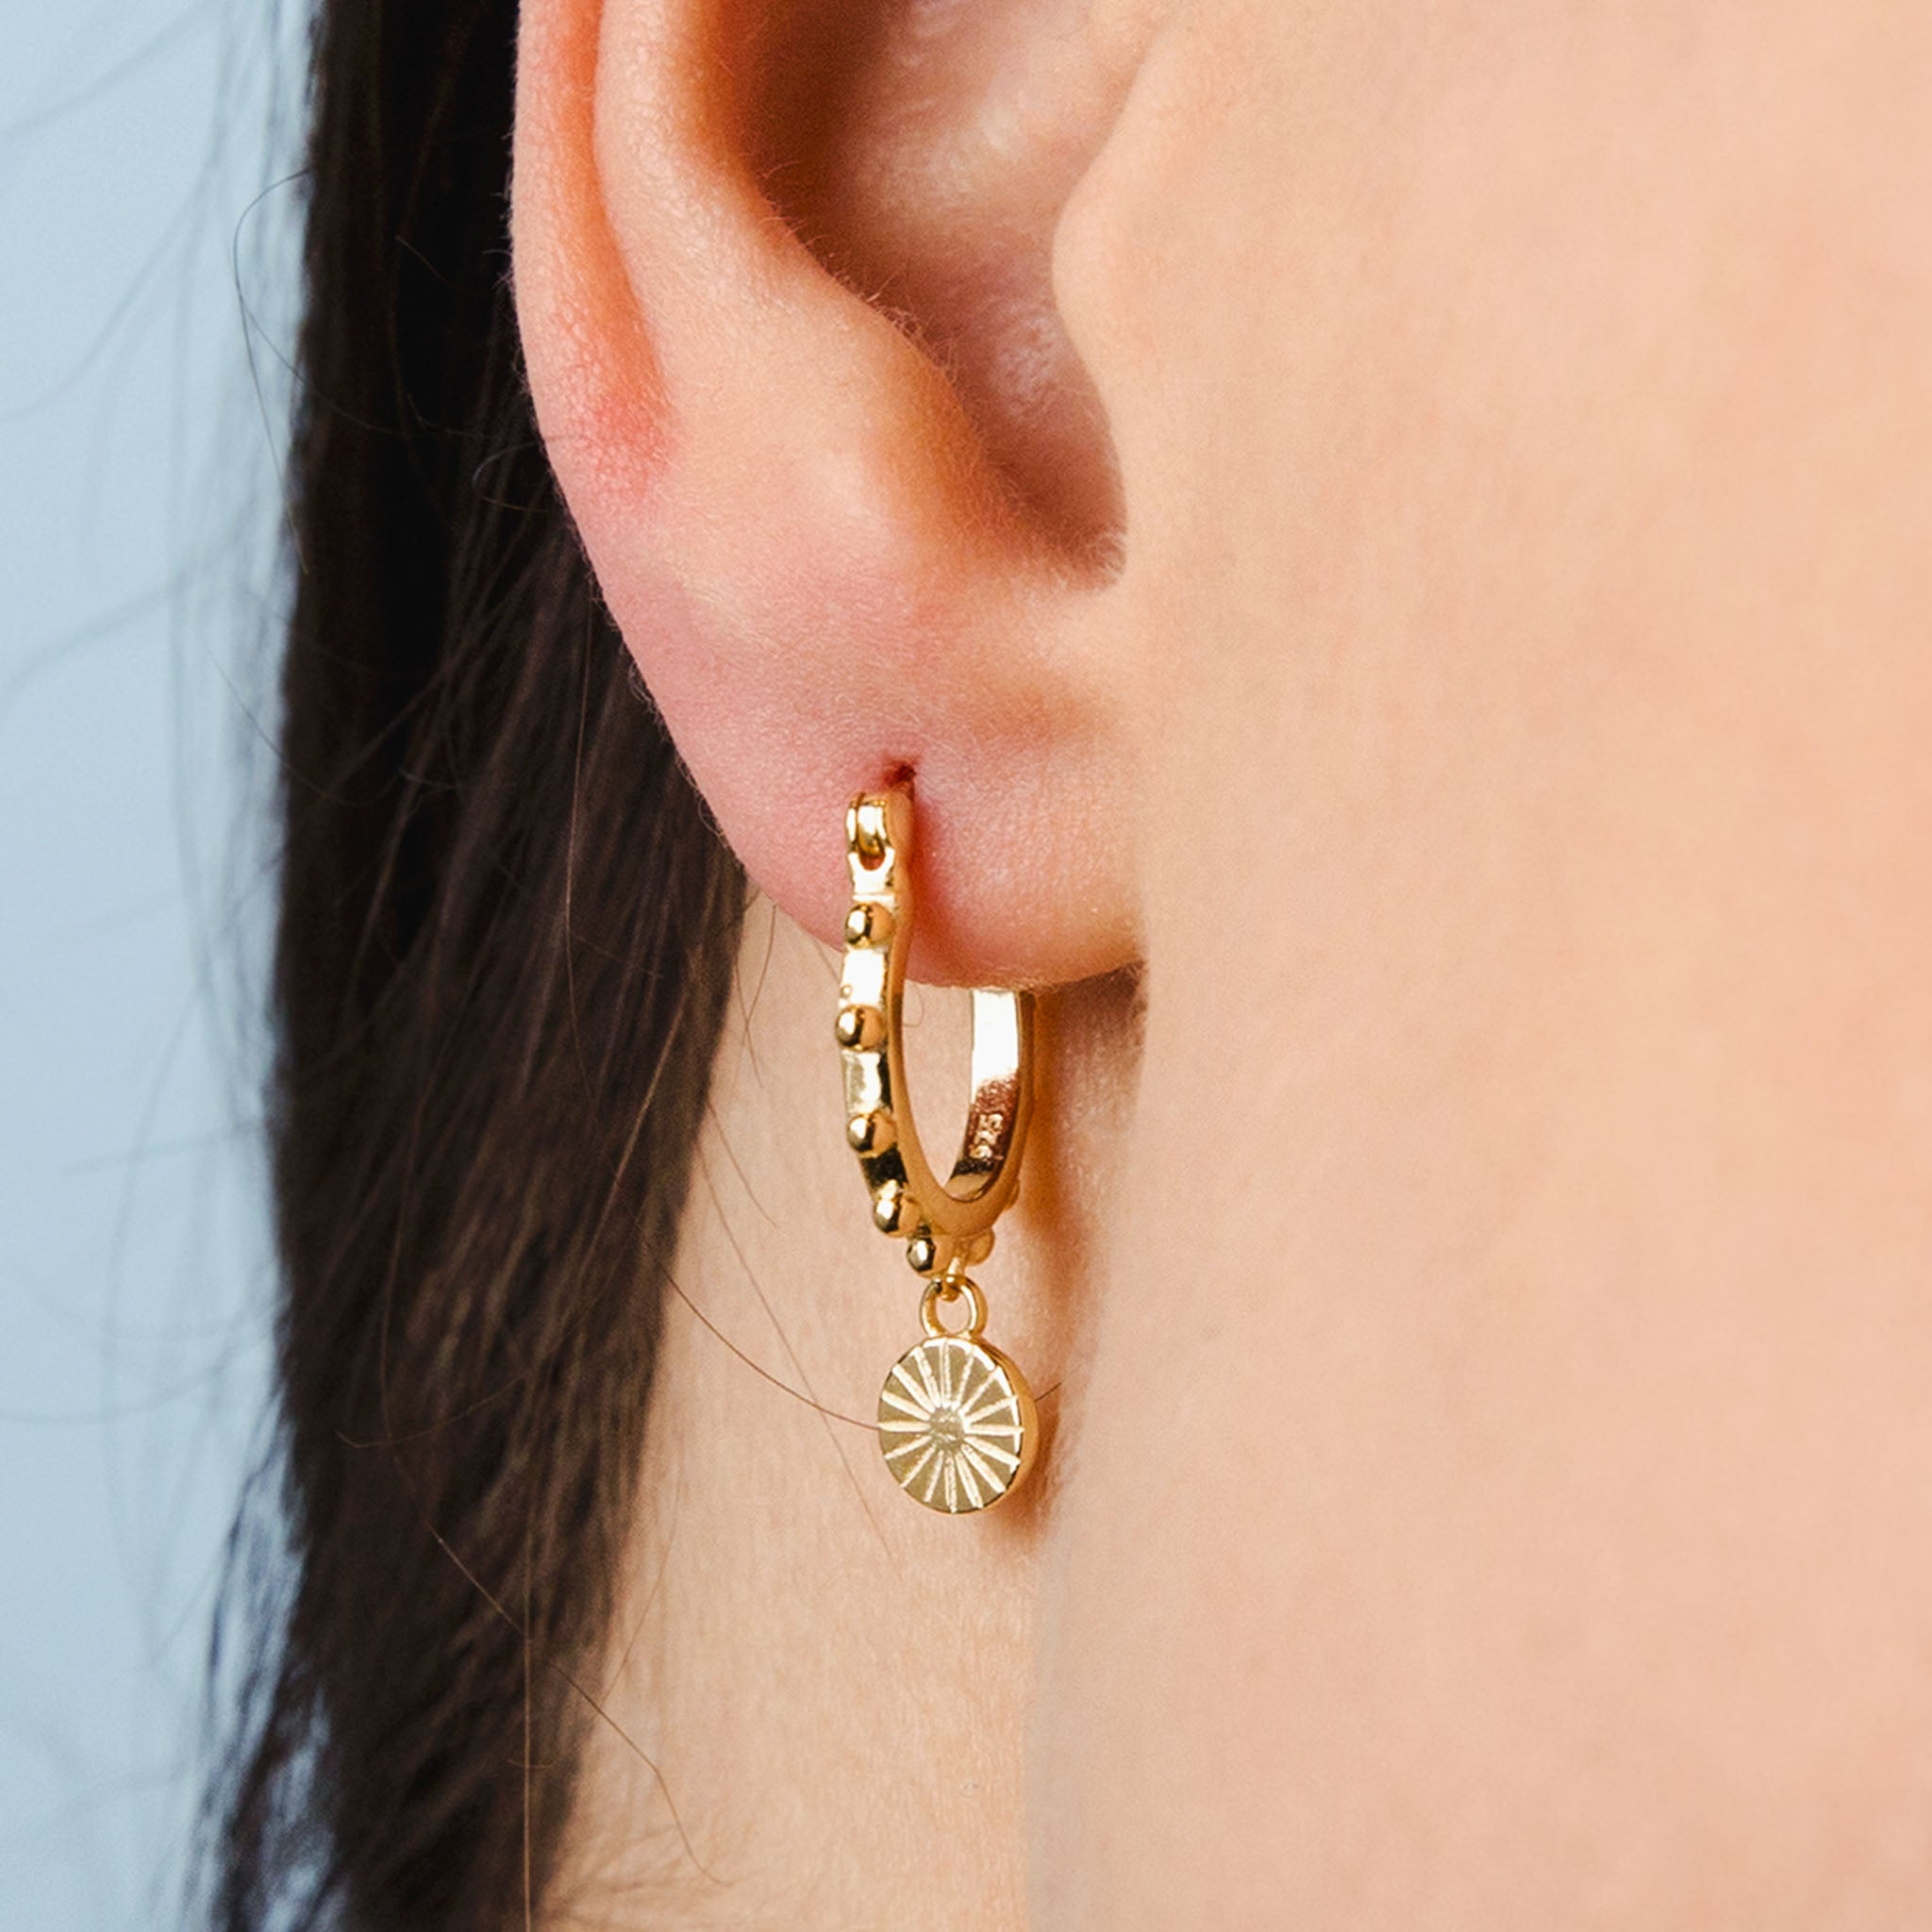 Gold Medalion Hoop Earrings With Charm